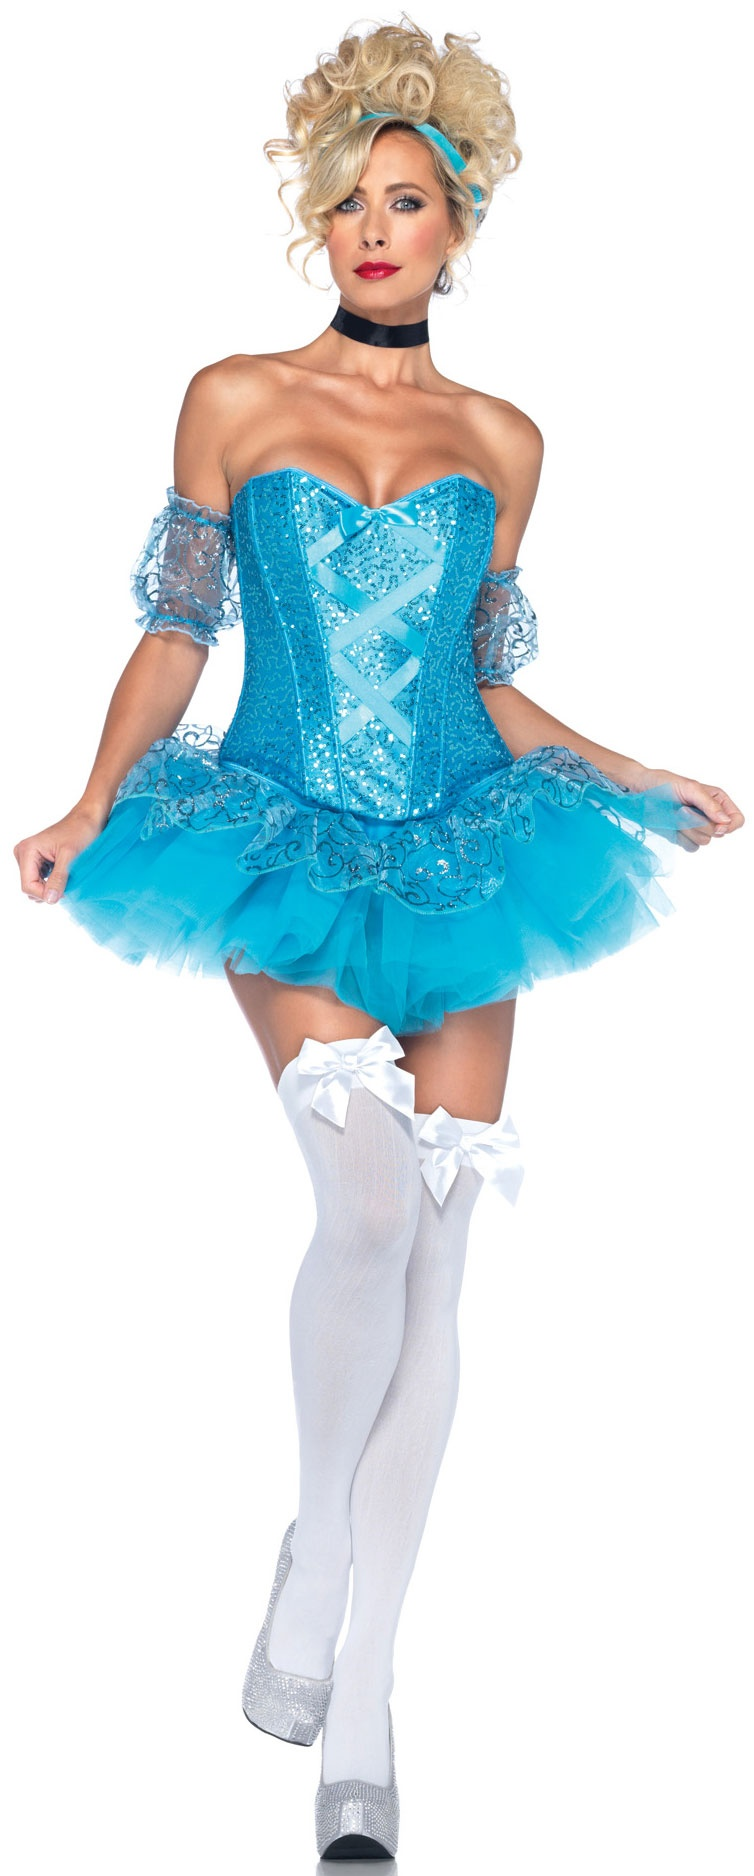 Glass Slipper Princess Cinderella Costume Costumes